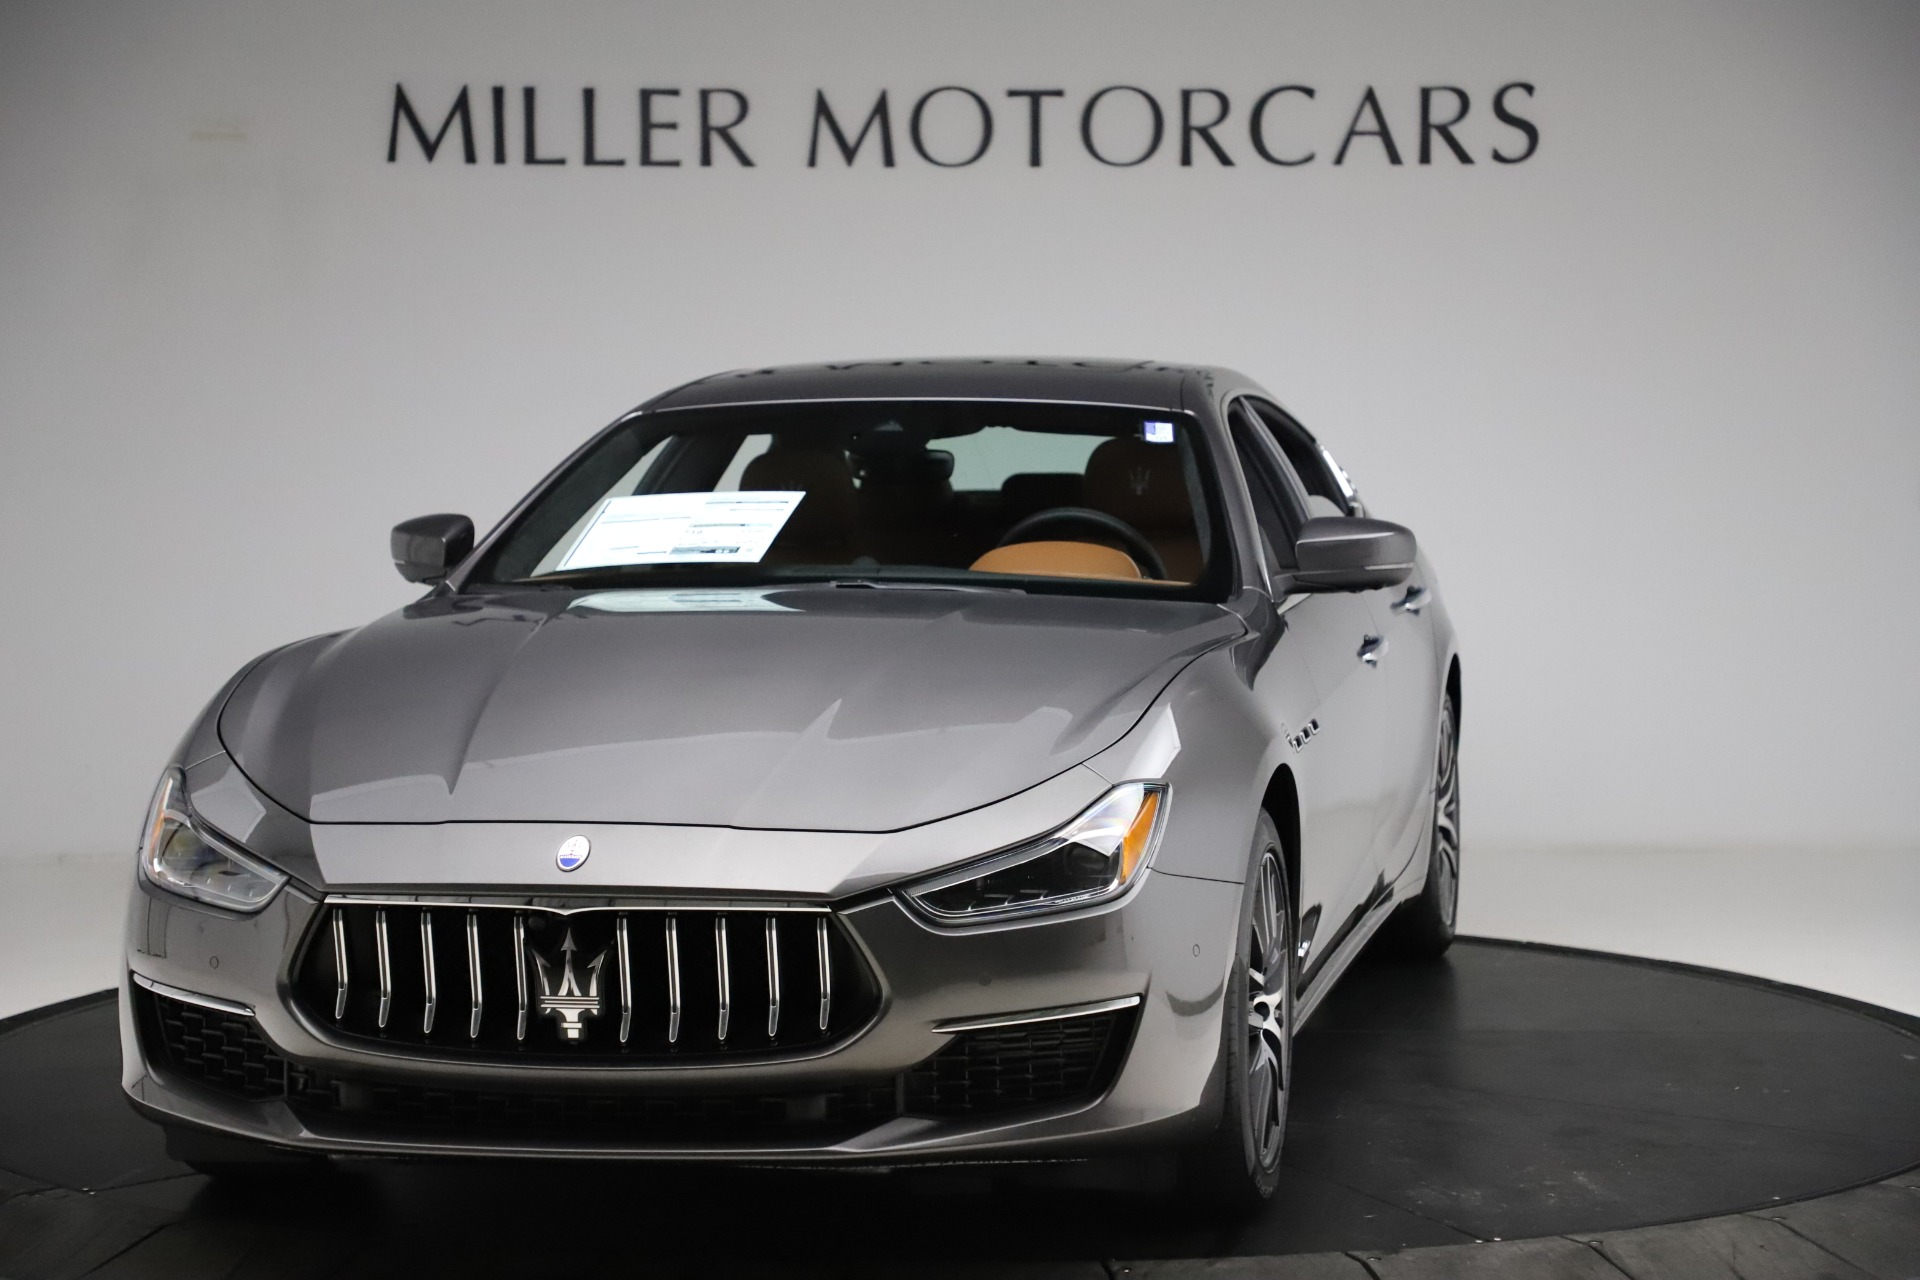 New 2021 Maserati Ghibli S Q4 GranLusso for sale Call for price at Bentley Greenwich in Greenwich CT 06830 1